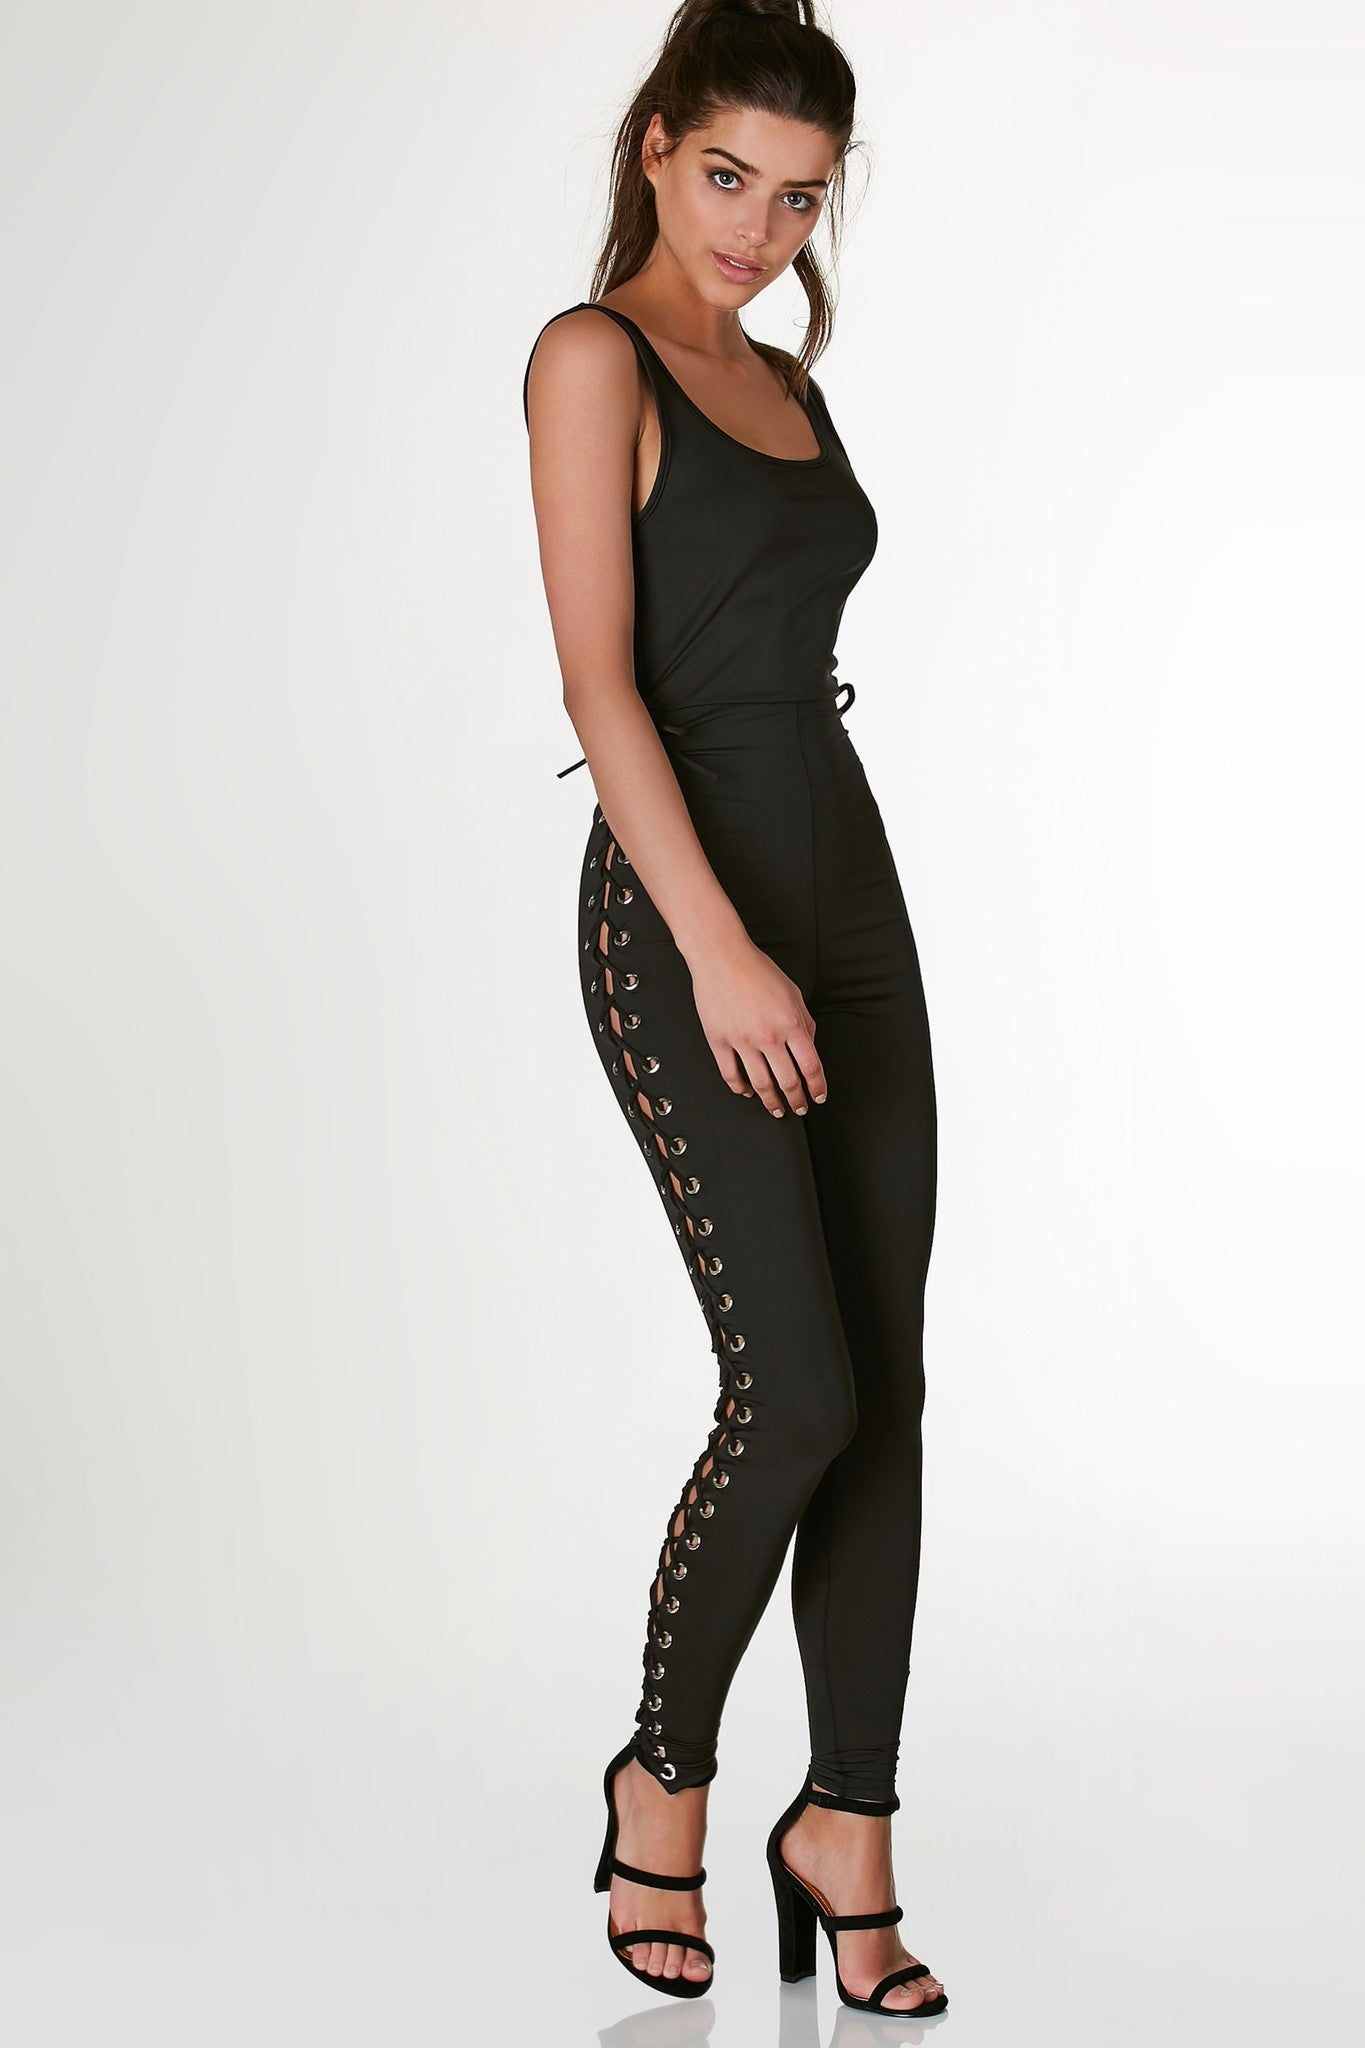 Sexy sleeveless jumpsuit with U-neckline and bodycon fit. Bold cut out down each side with lace up design and eyelet detailing.